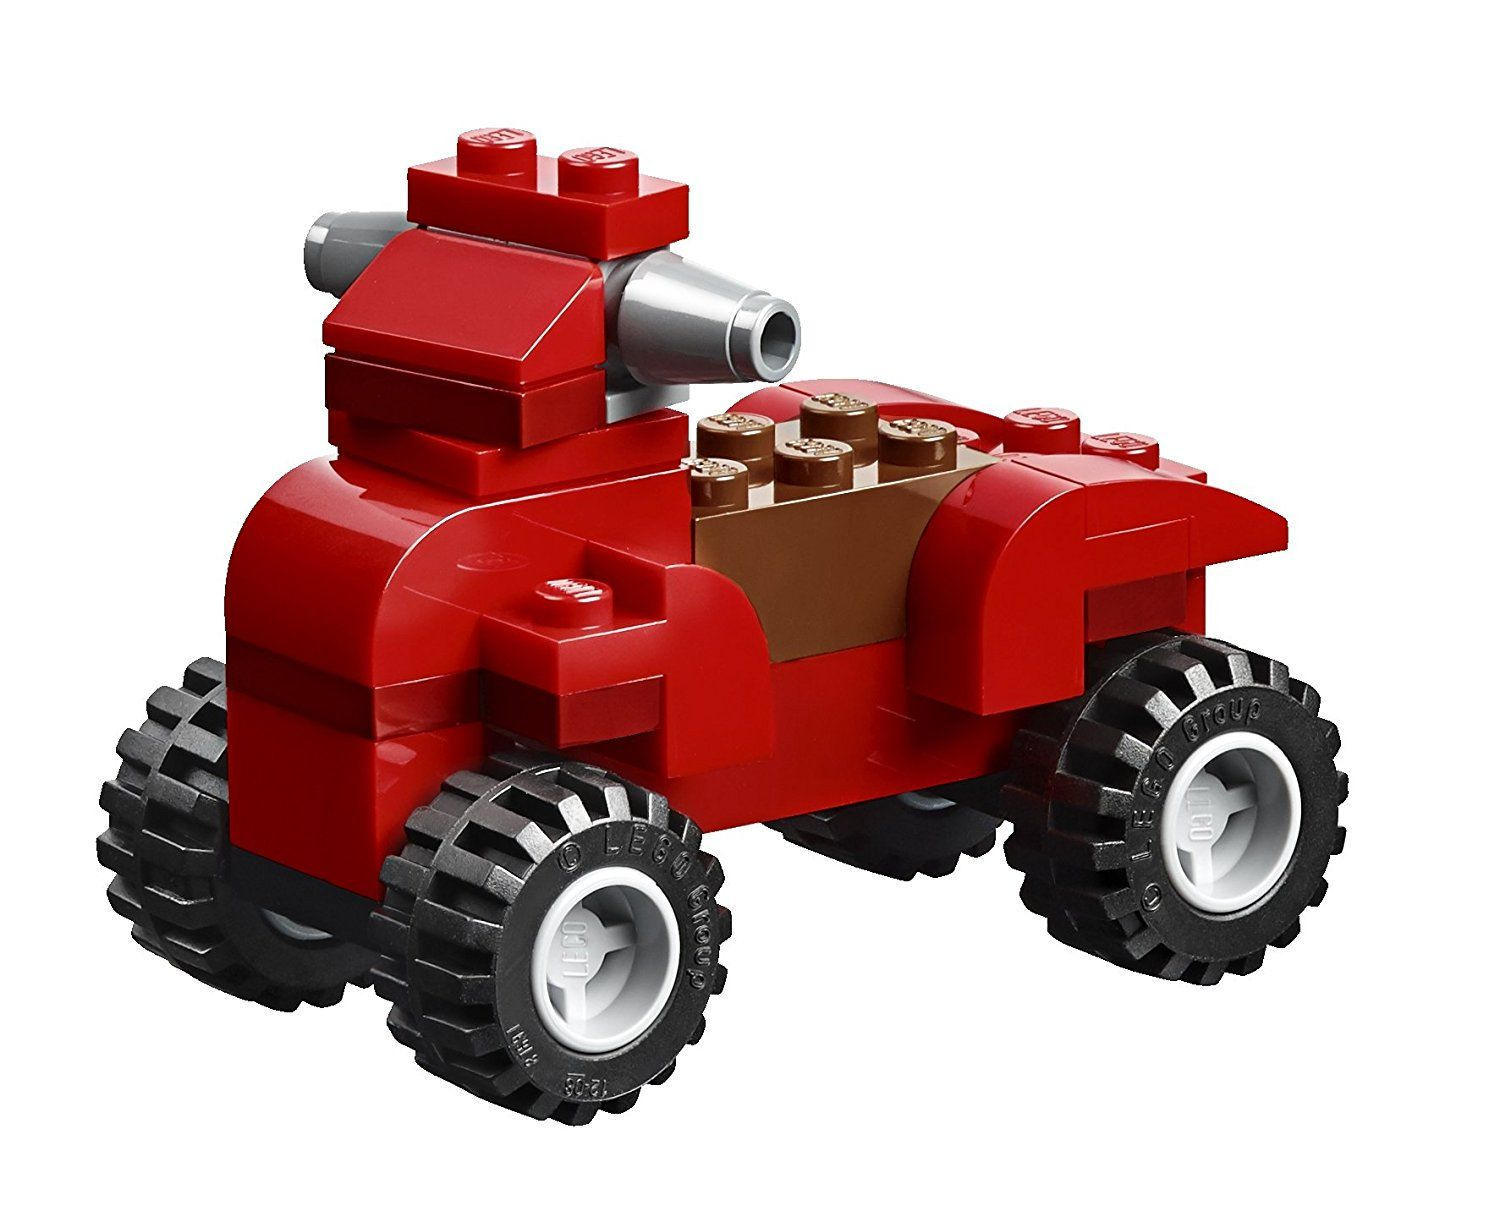 Lego Classic Car Instructions